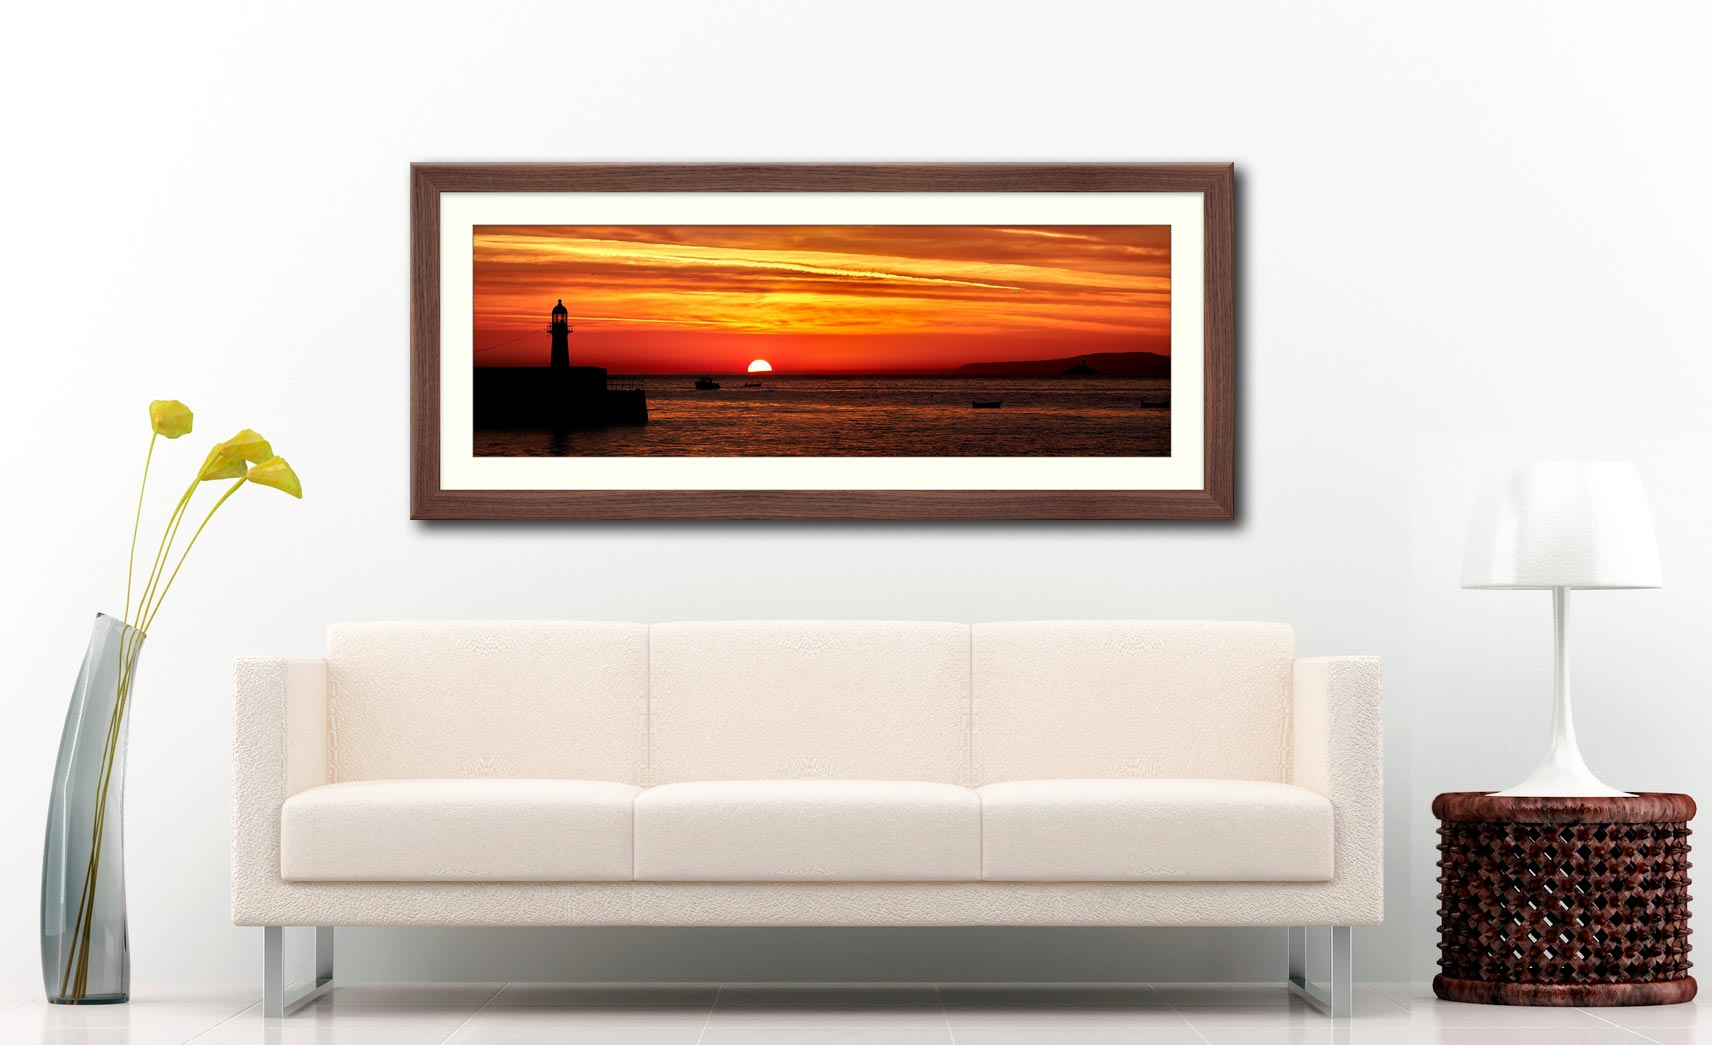 Dawn Breaking Over St Ives Bay - Framed Print with Mount on Wall